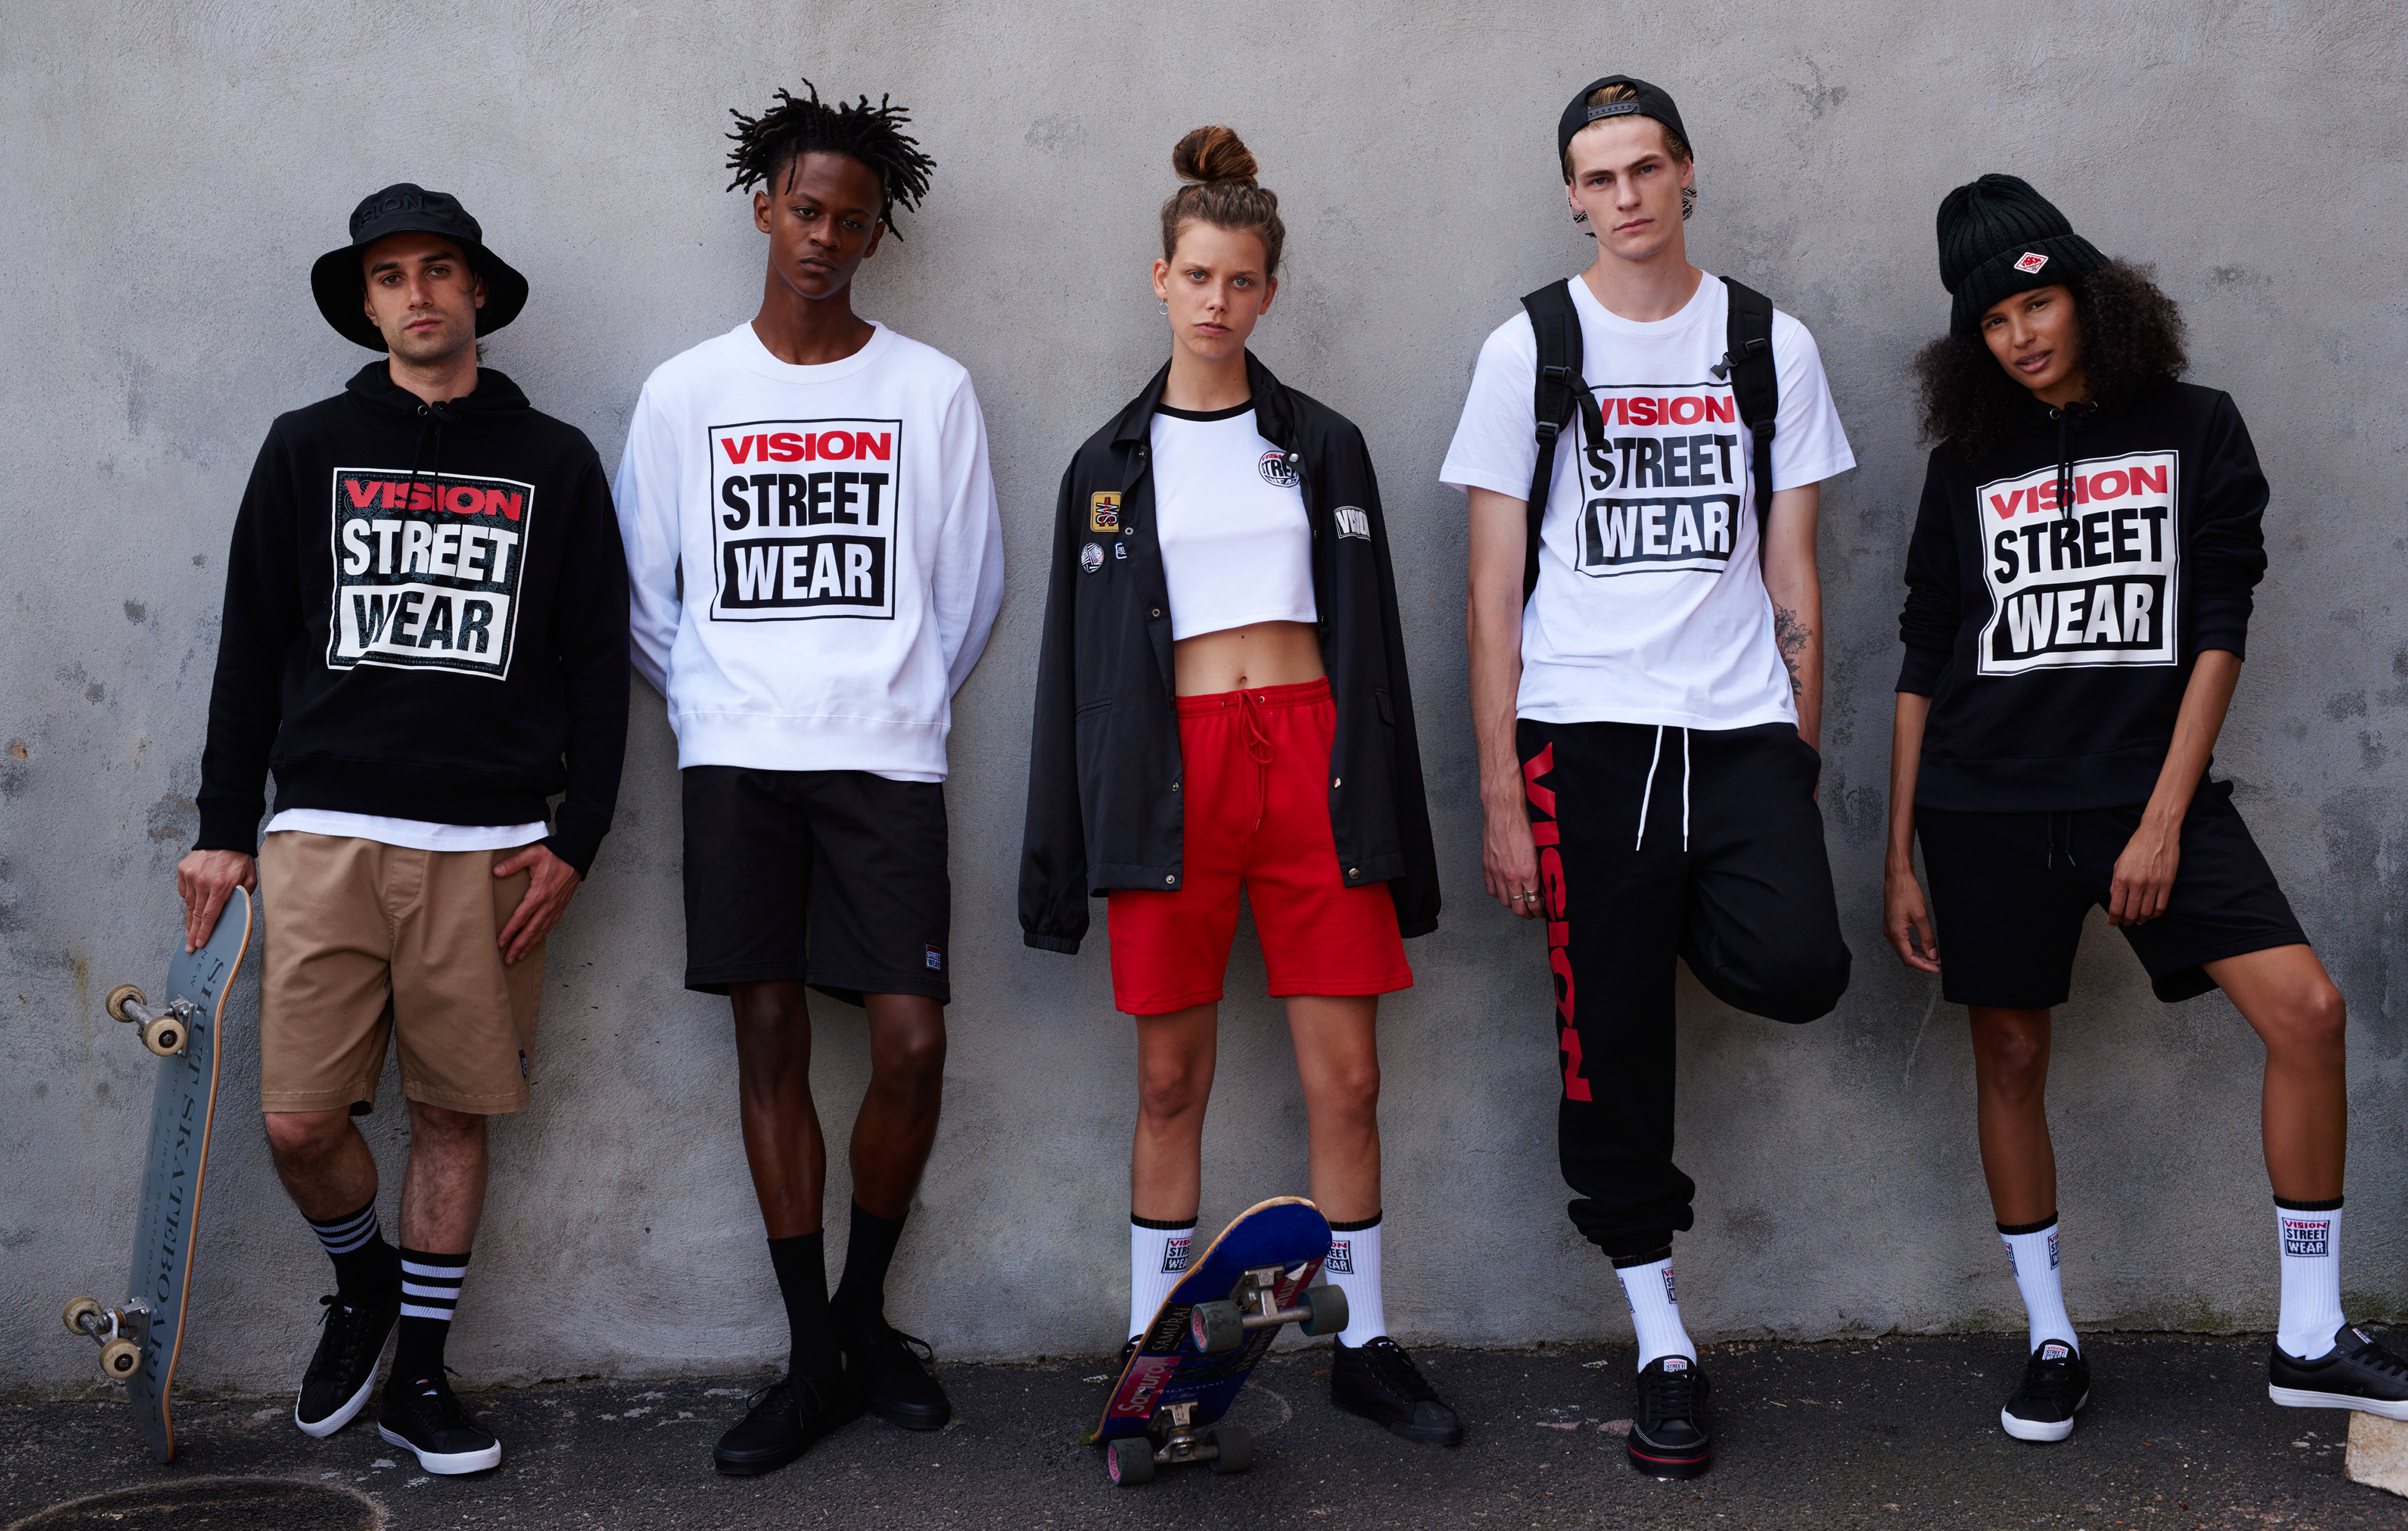 street wear Street style has become just as major as the runway shows themselves check out these street style pictures for fashion inspiration.